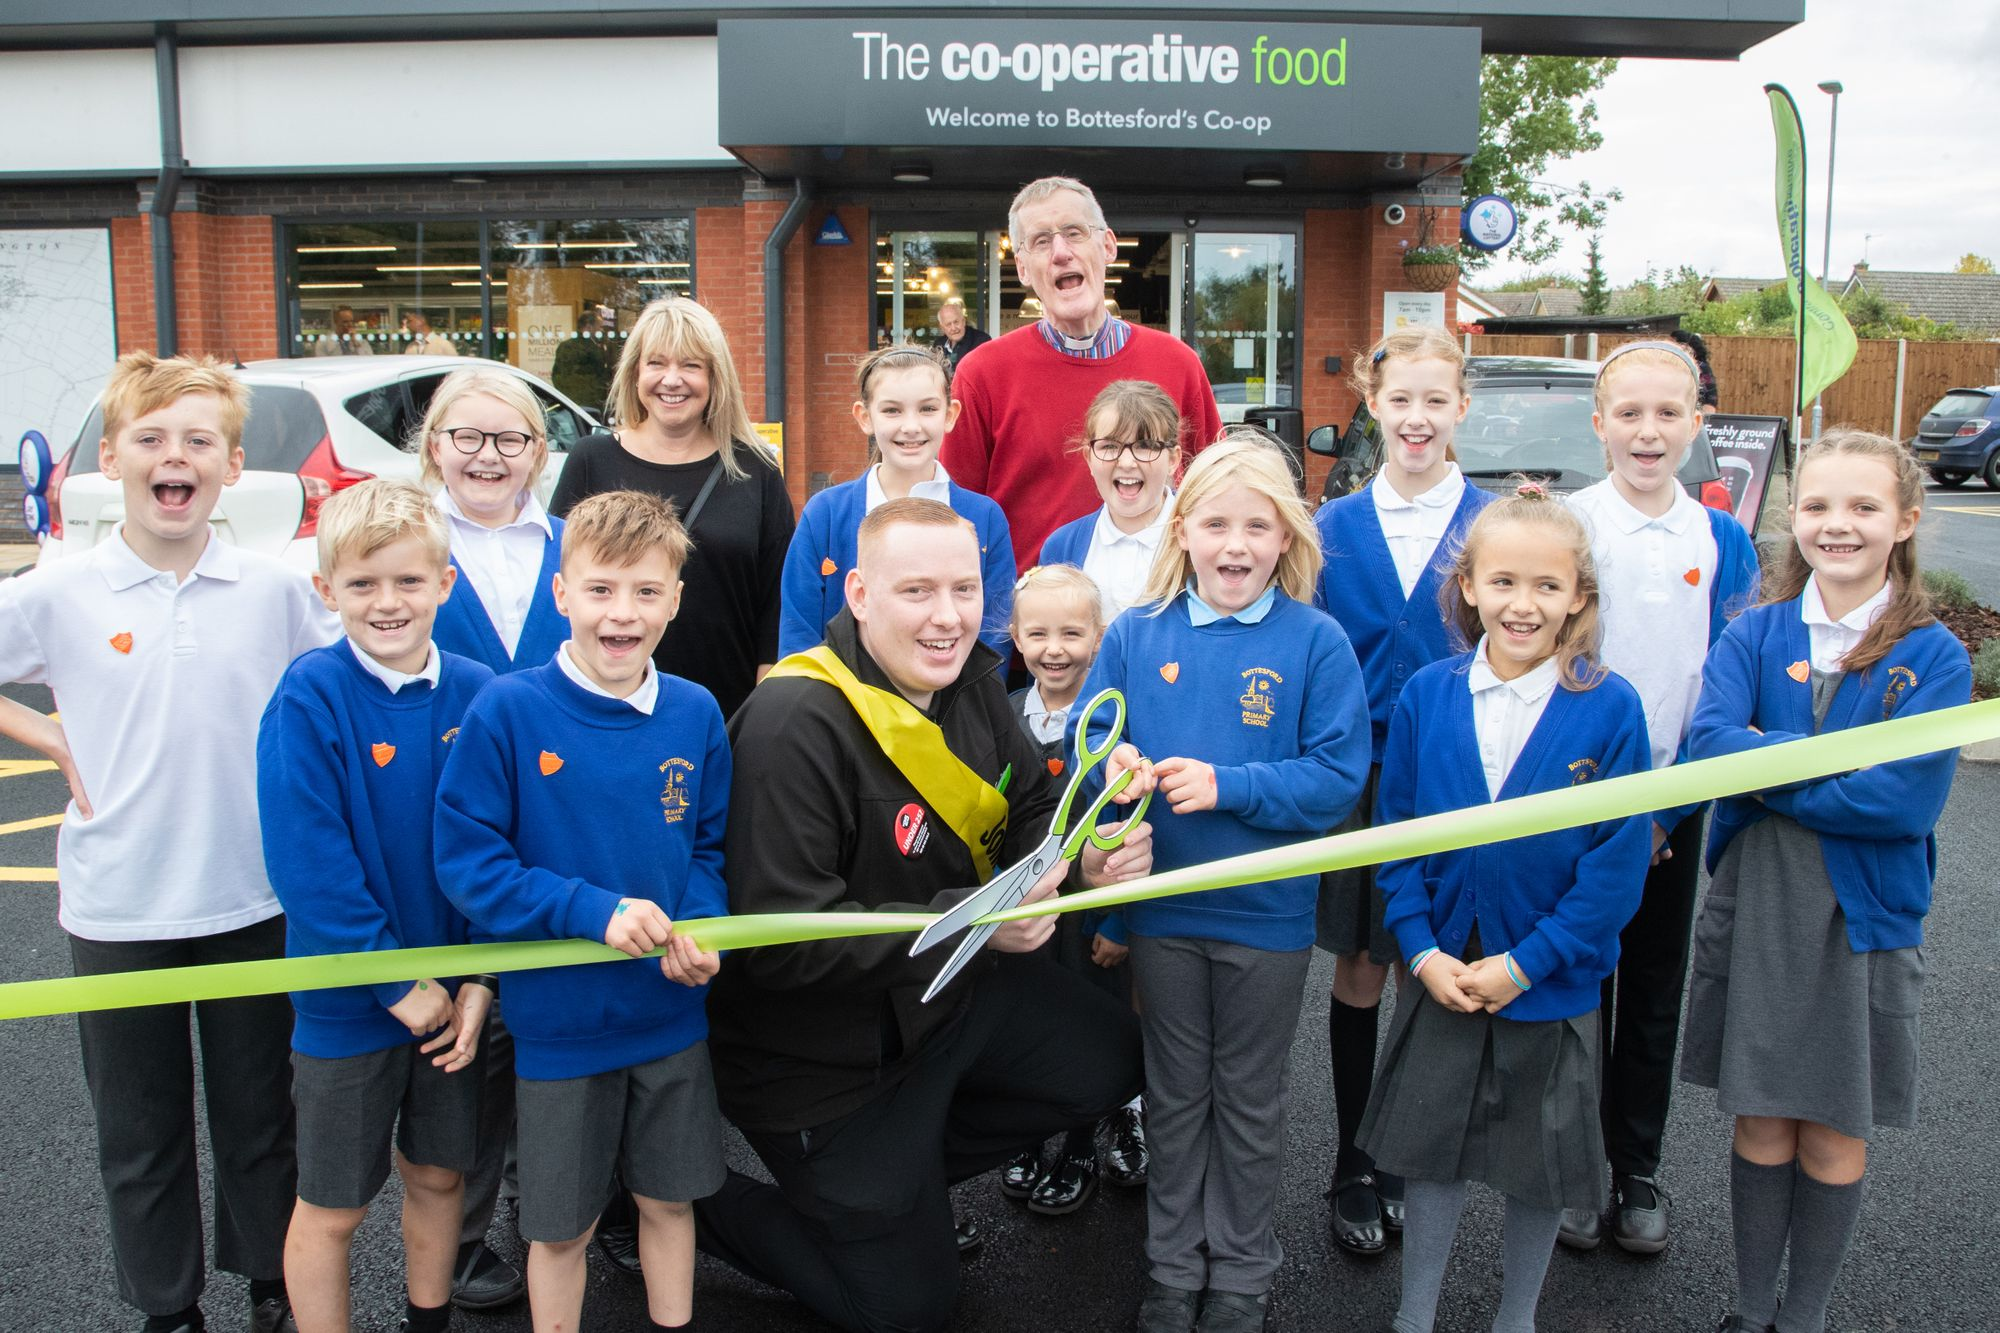 Food store team praise 'fantastic community spirit' during whirlwind first 12 months